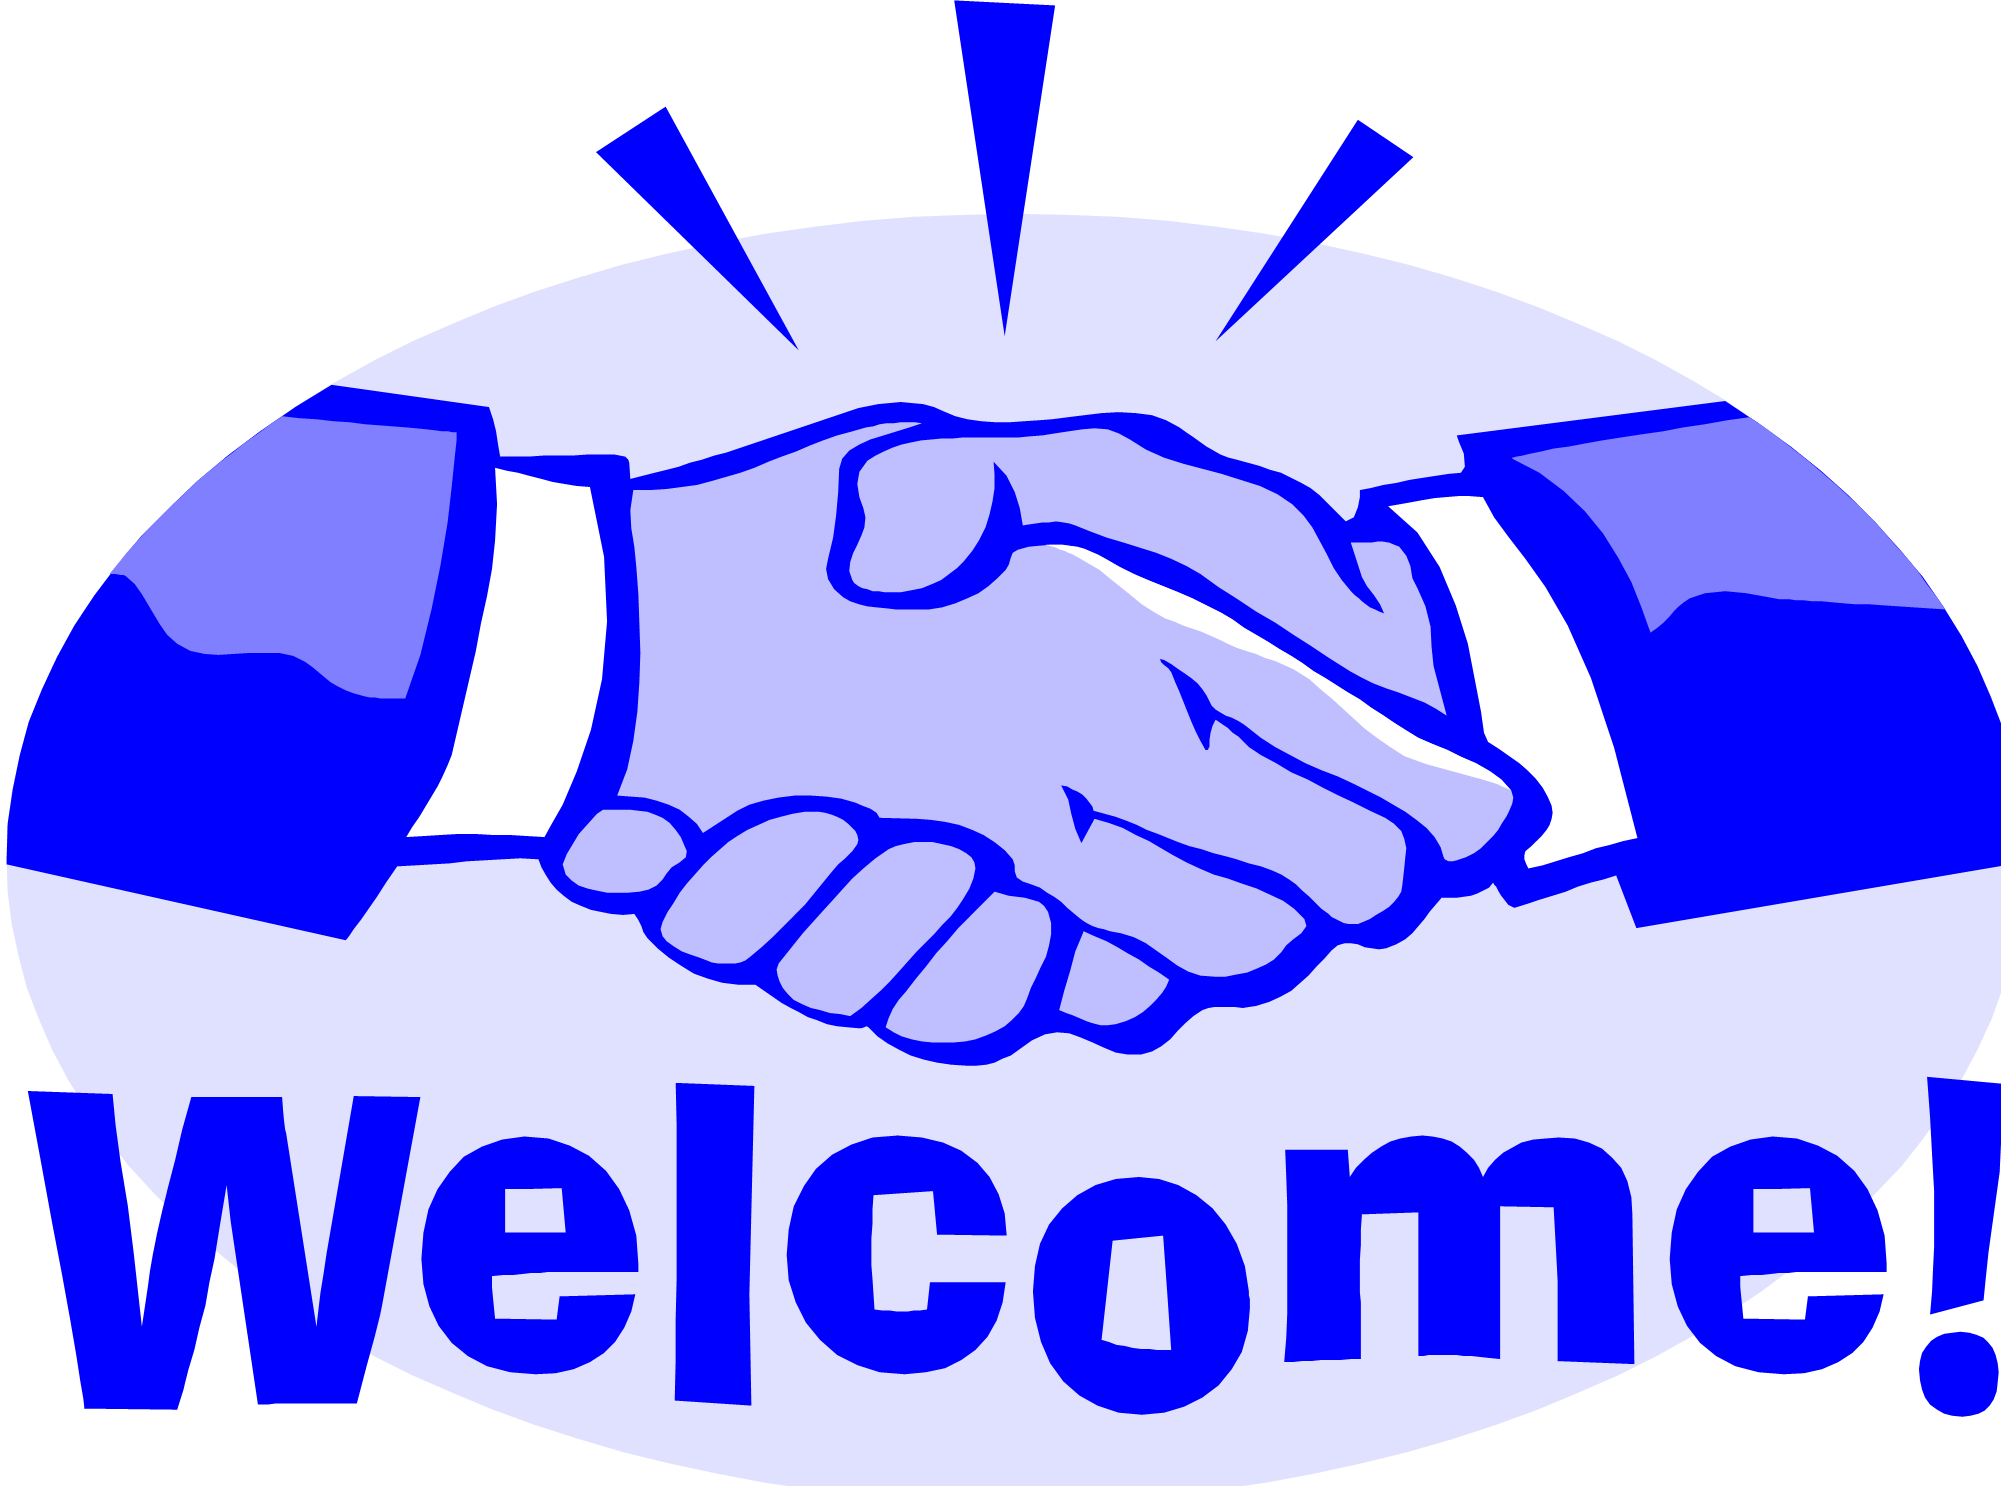 Welcome new employees clipart picture free stock 6 Fun Ways to Welcome New Employees to Your Company ... picture free stock